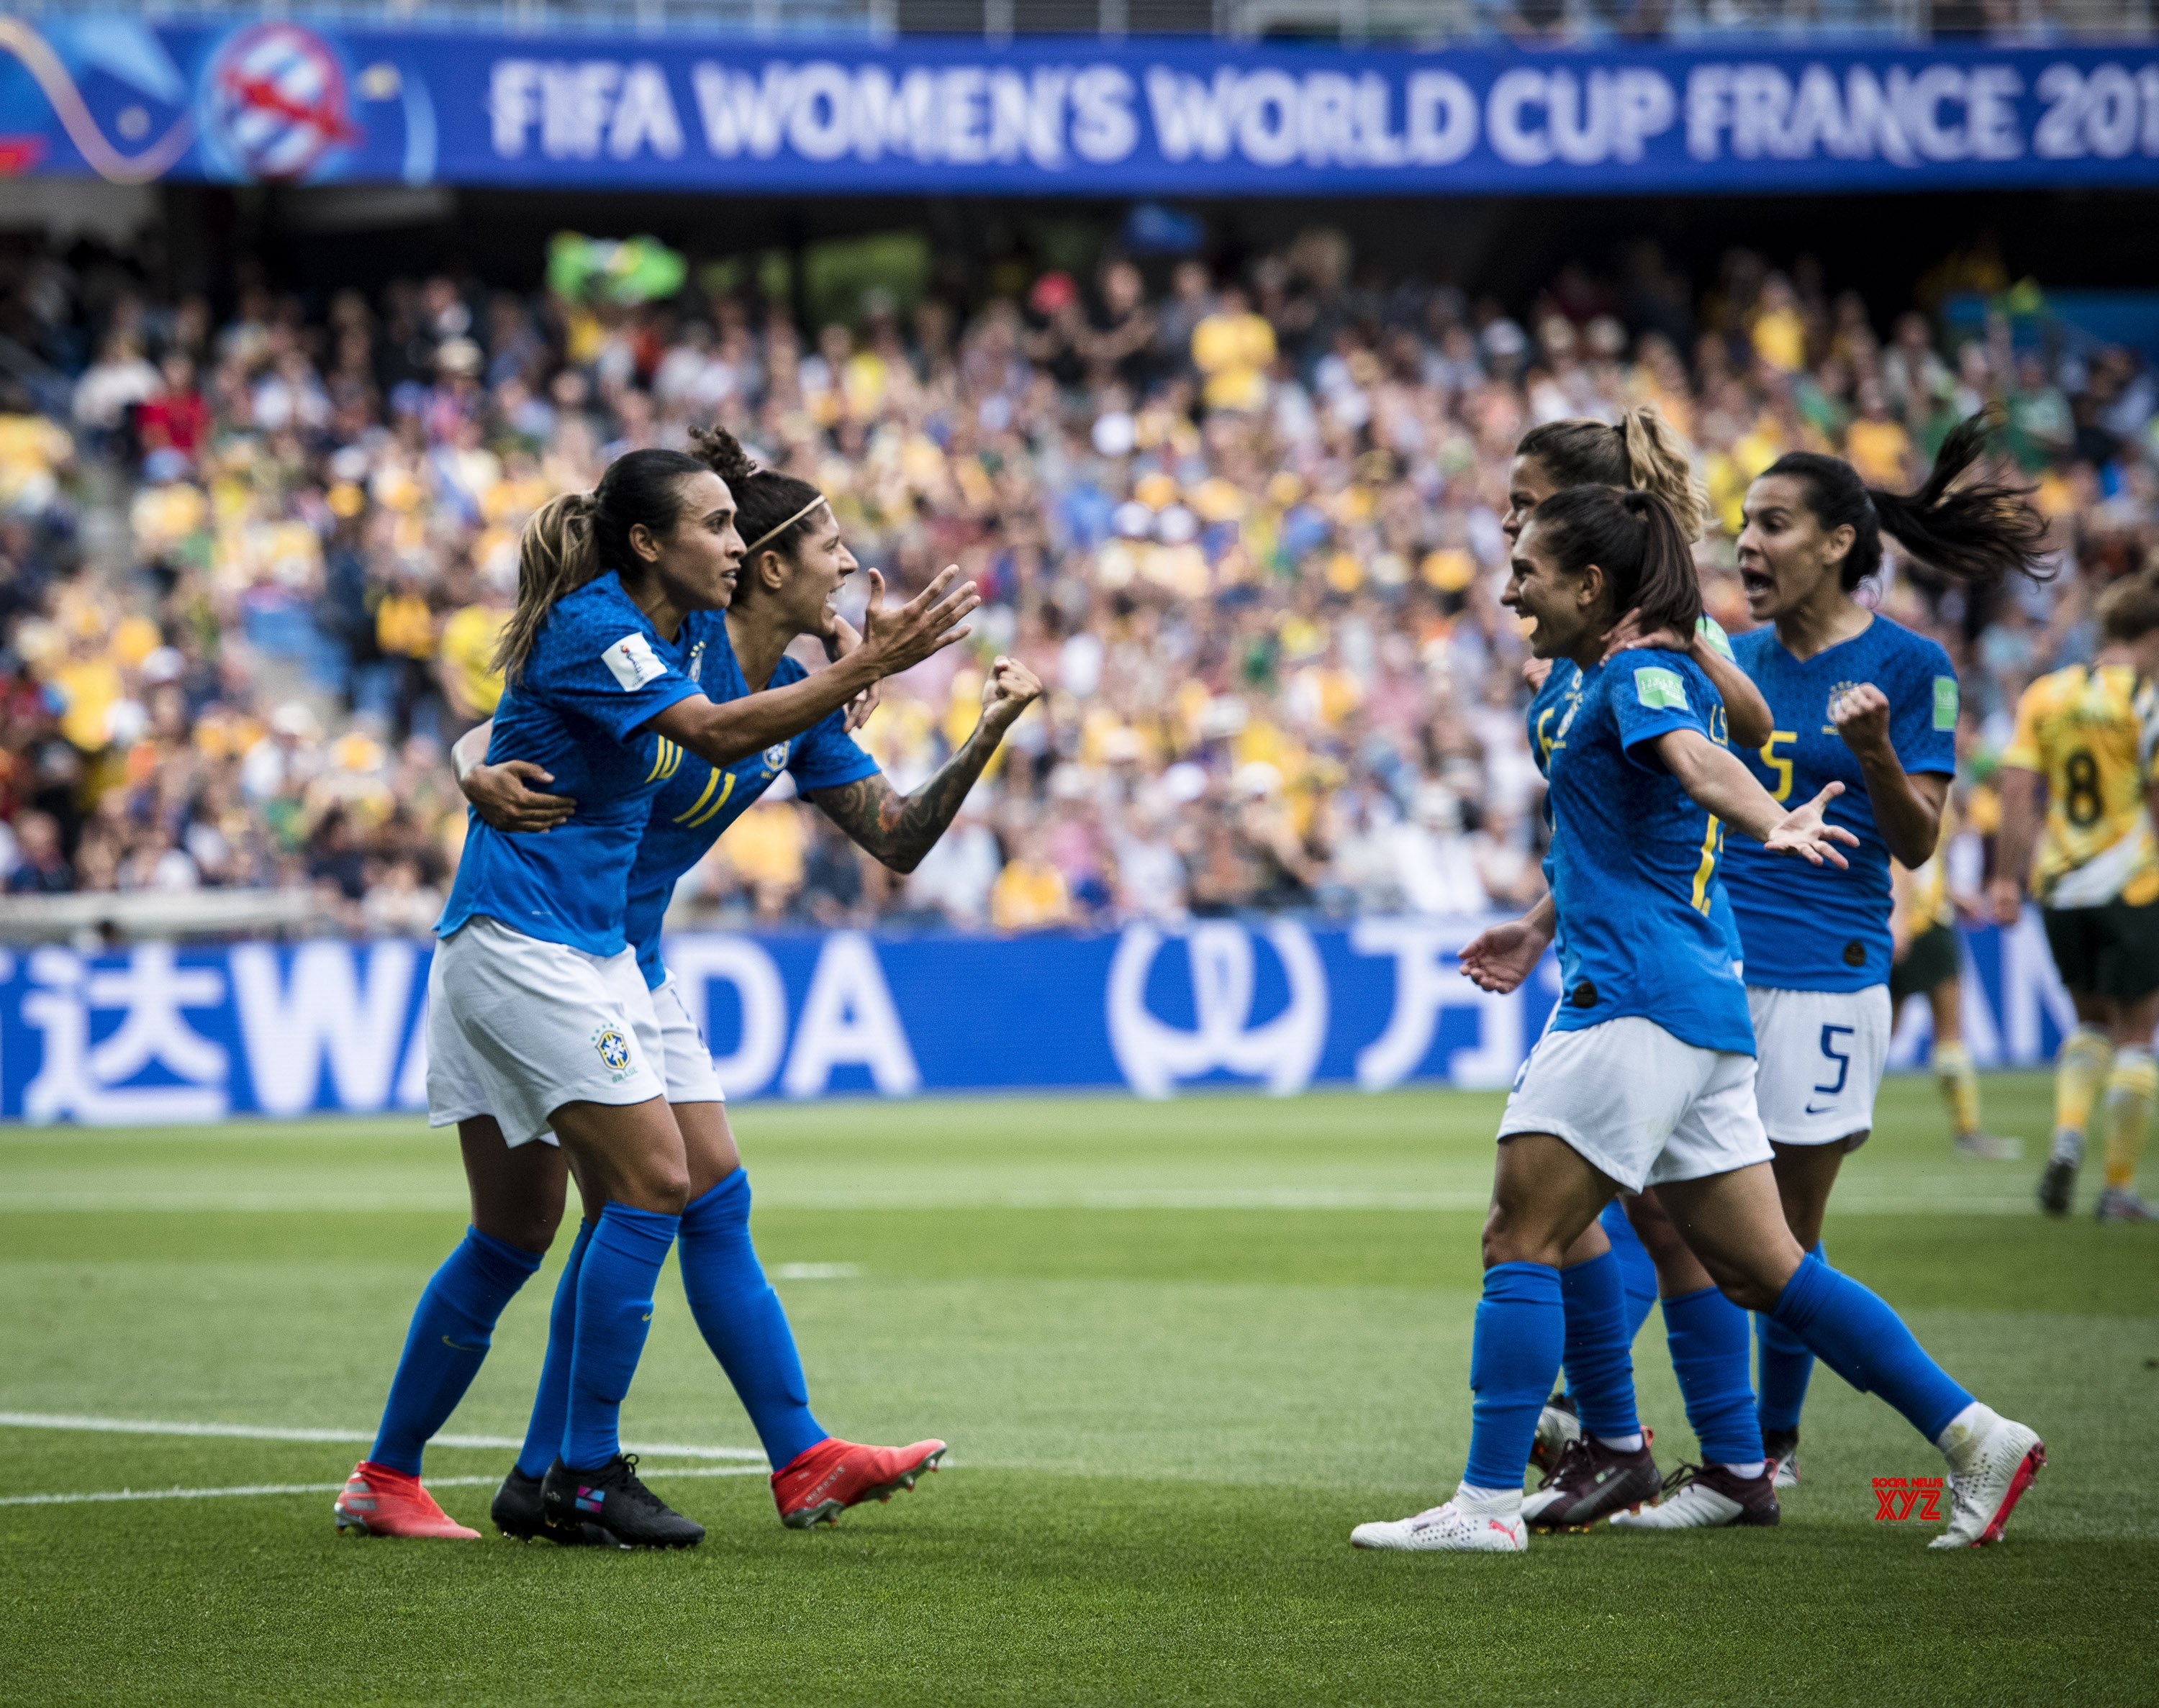 (SP)FRANCE - MONTPELLIER - 2019 FIFA WOMEN'S WORLD CUP - GROUP C - BRAZIL VS AUSTRALIA #Gallery